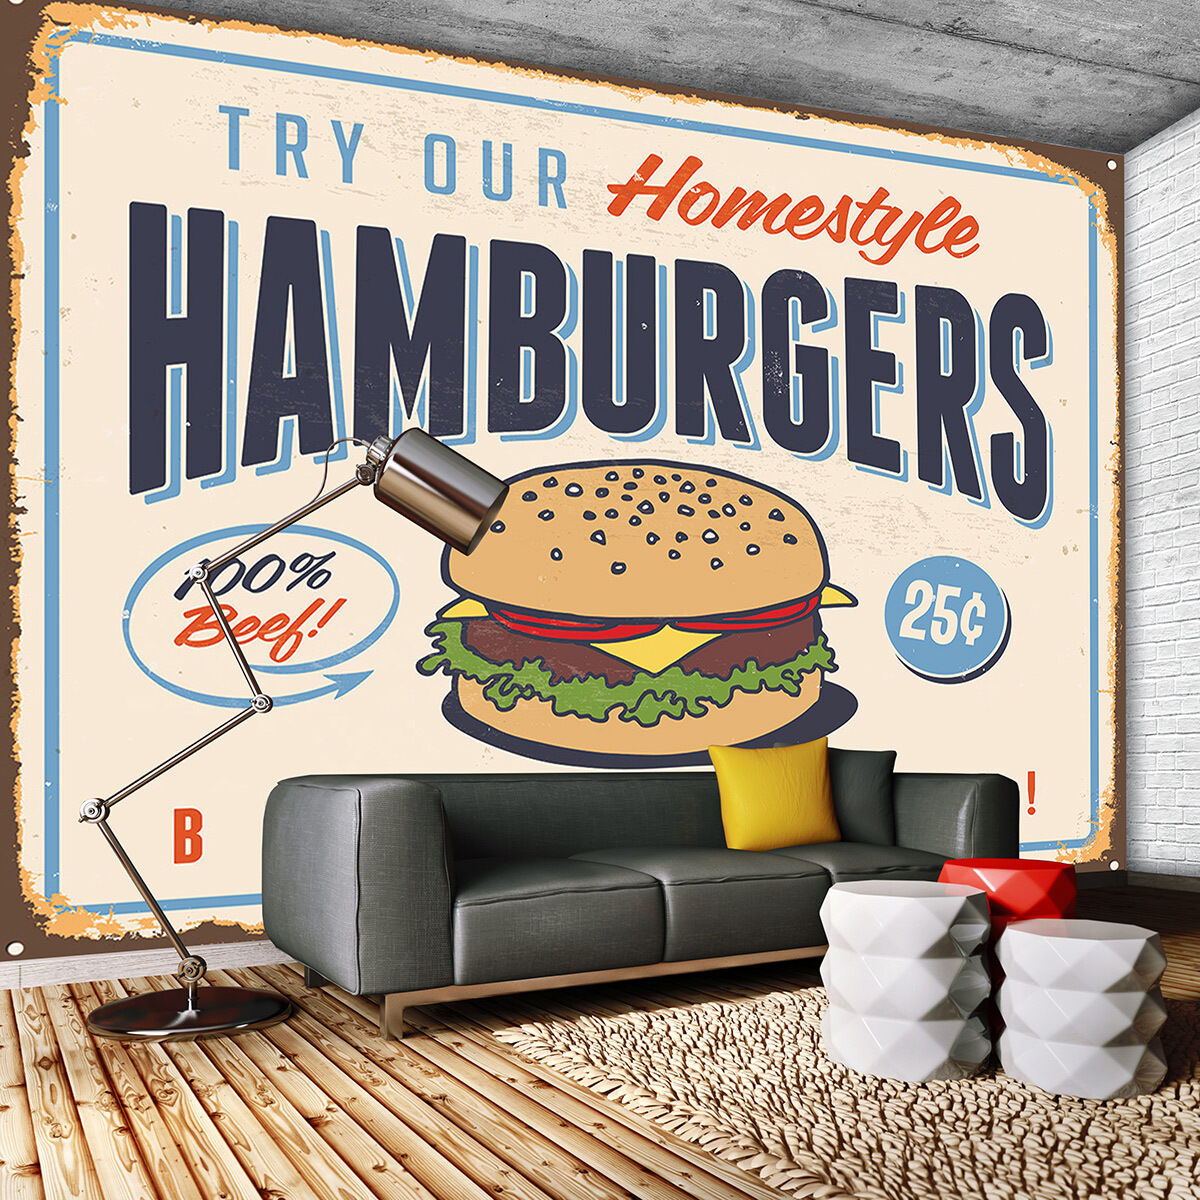 VLIES POSTER WANDBILD  FOTOTAPETE HAMBURGER FAST FOOD ESSEN WAND BILD 3FX3185VE